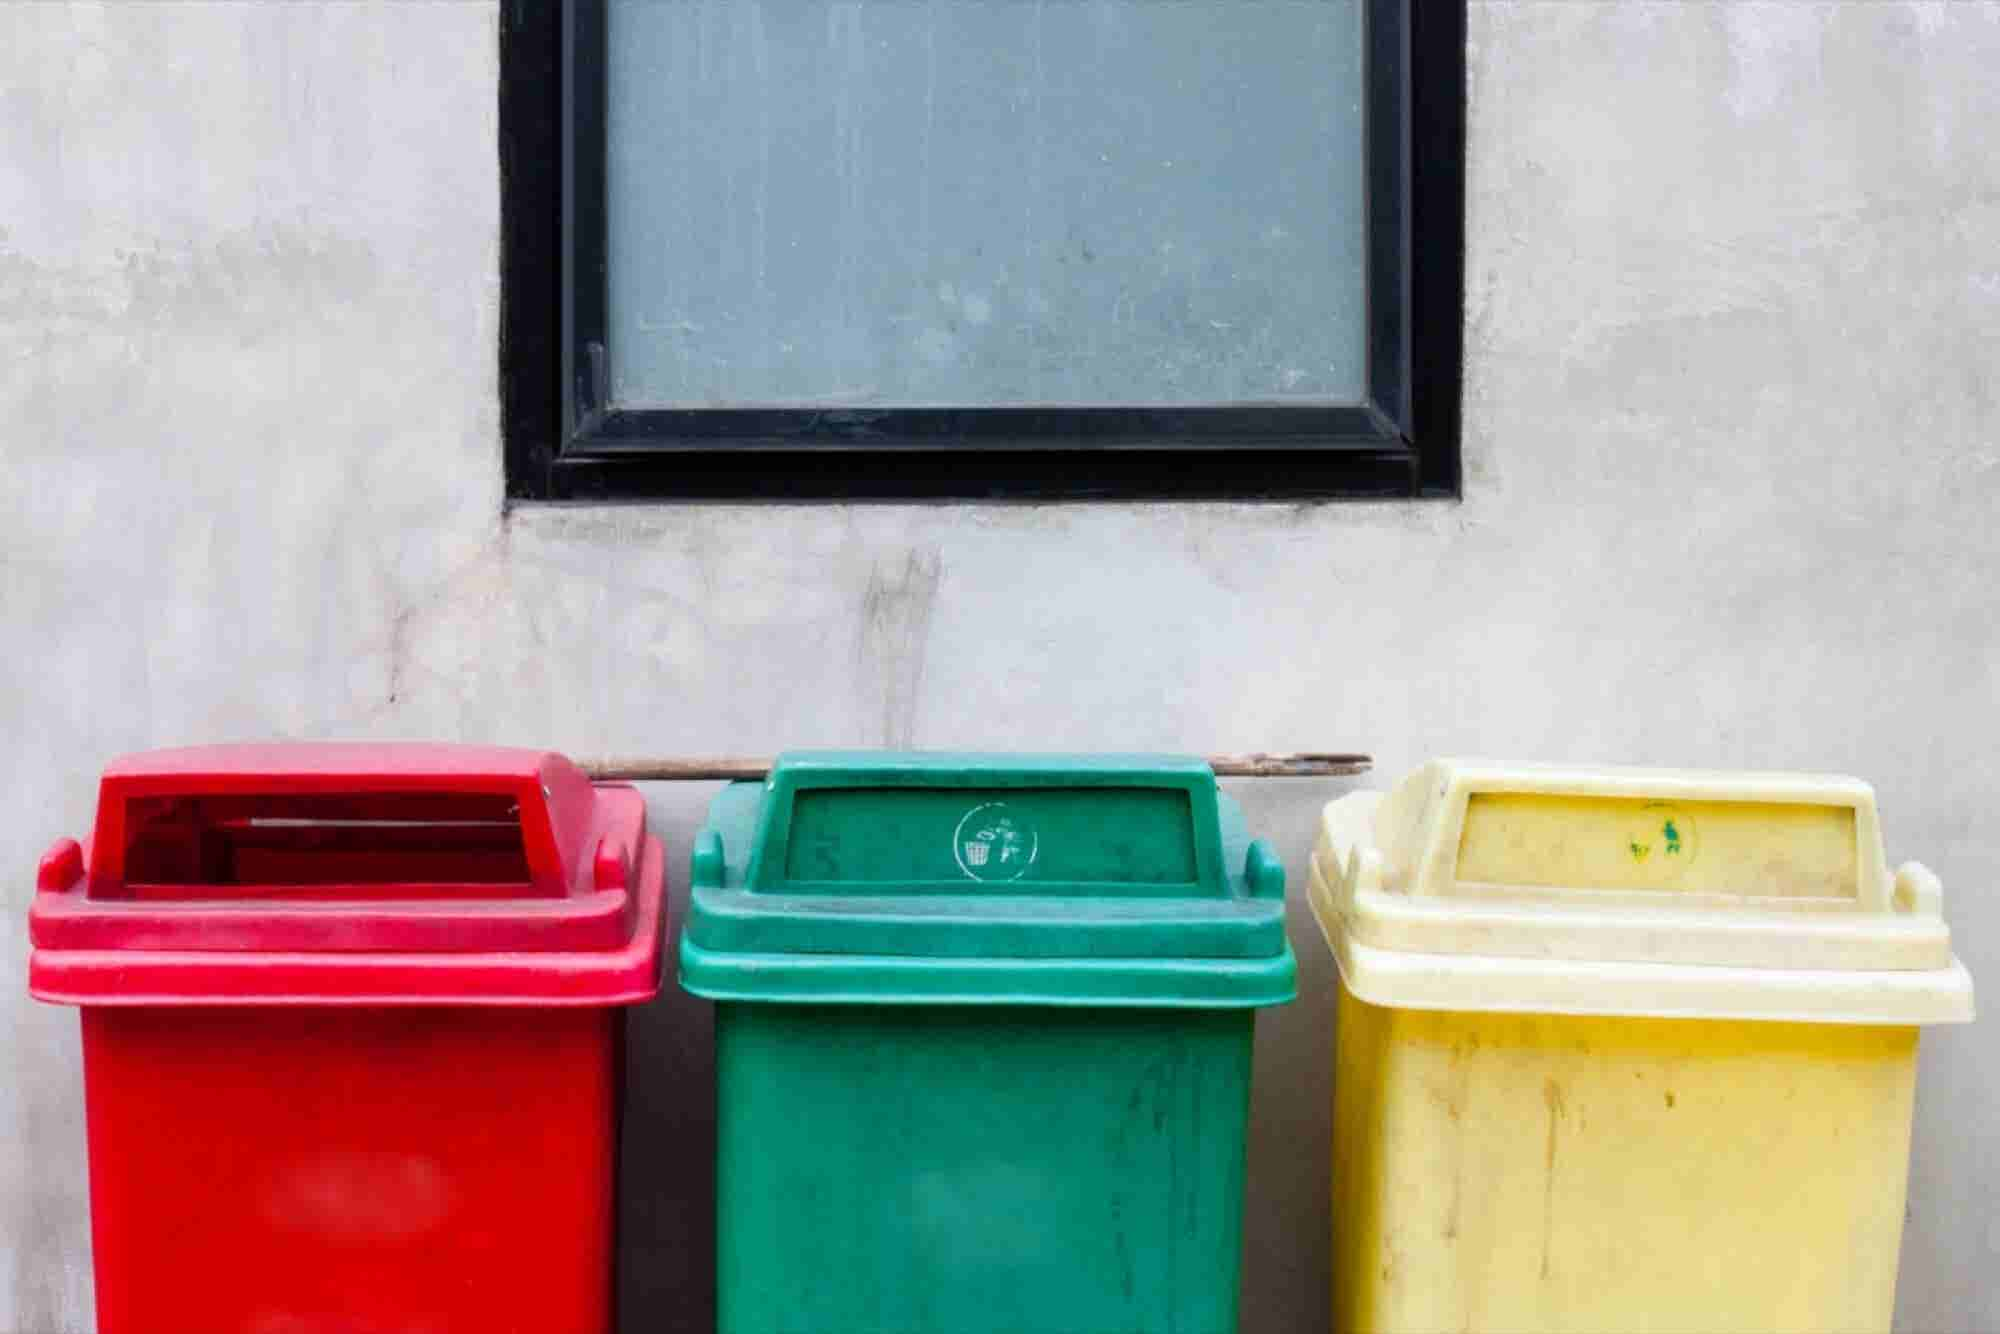 European Companies Are Leading the Way on Plastic Waste Reduction, But More Needs to Be Done